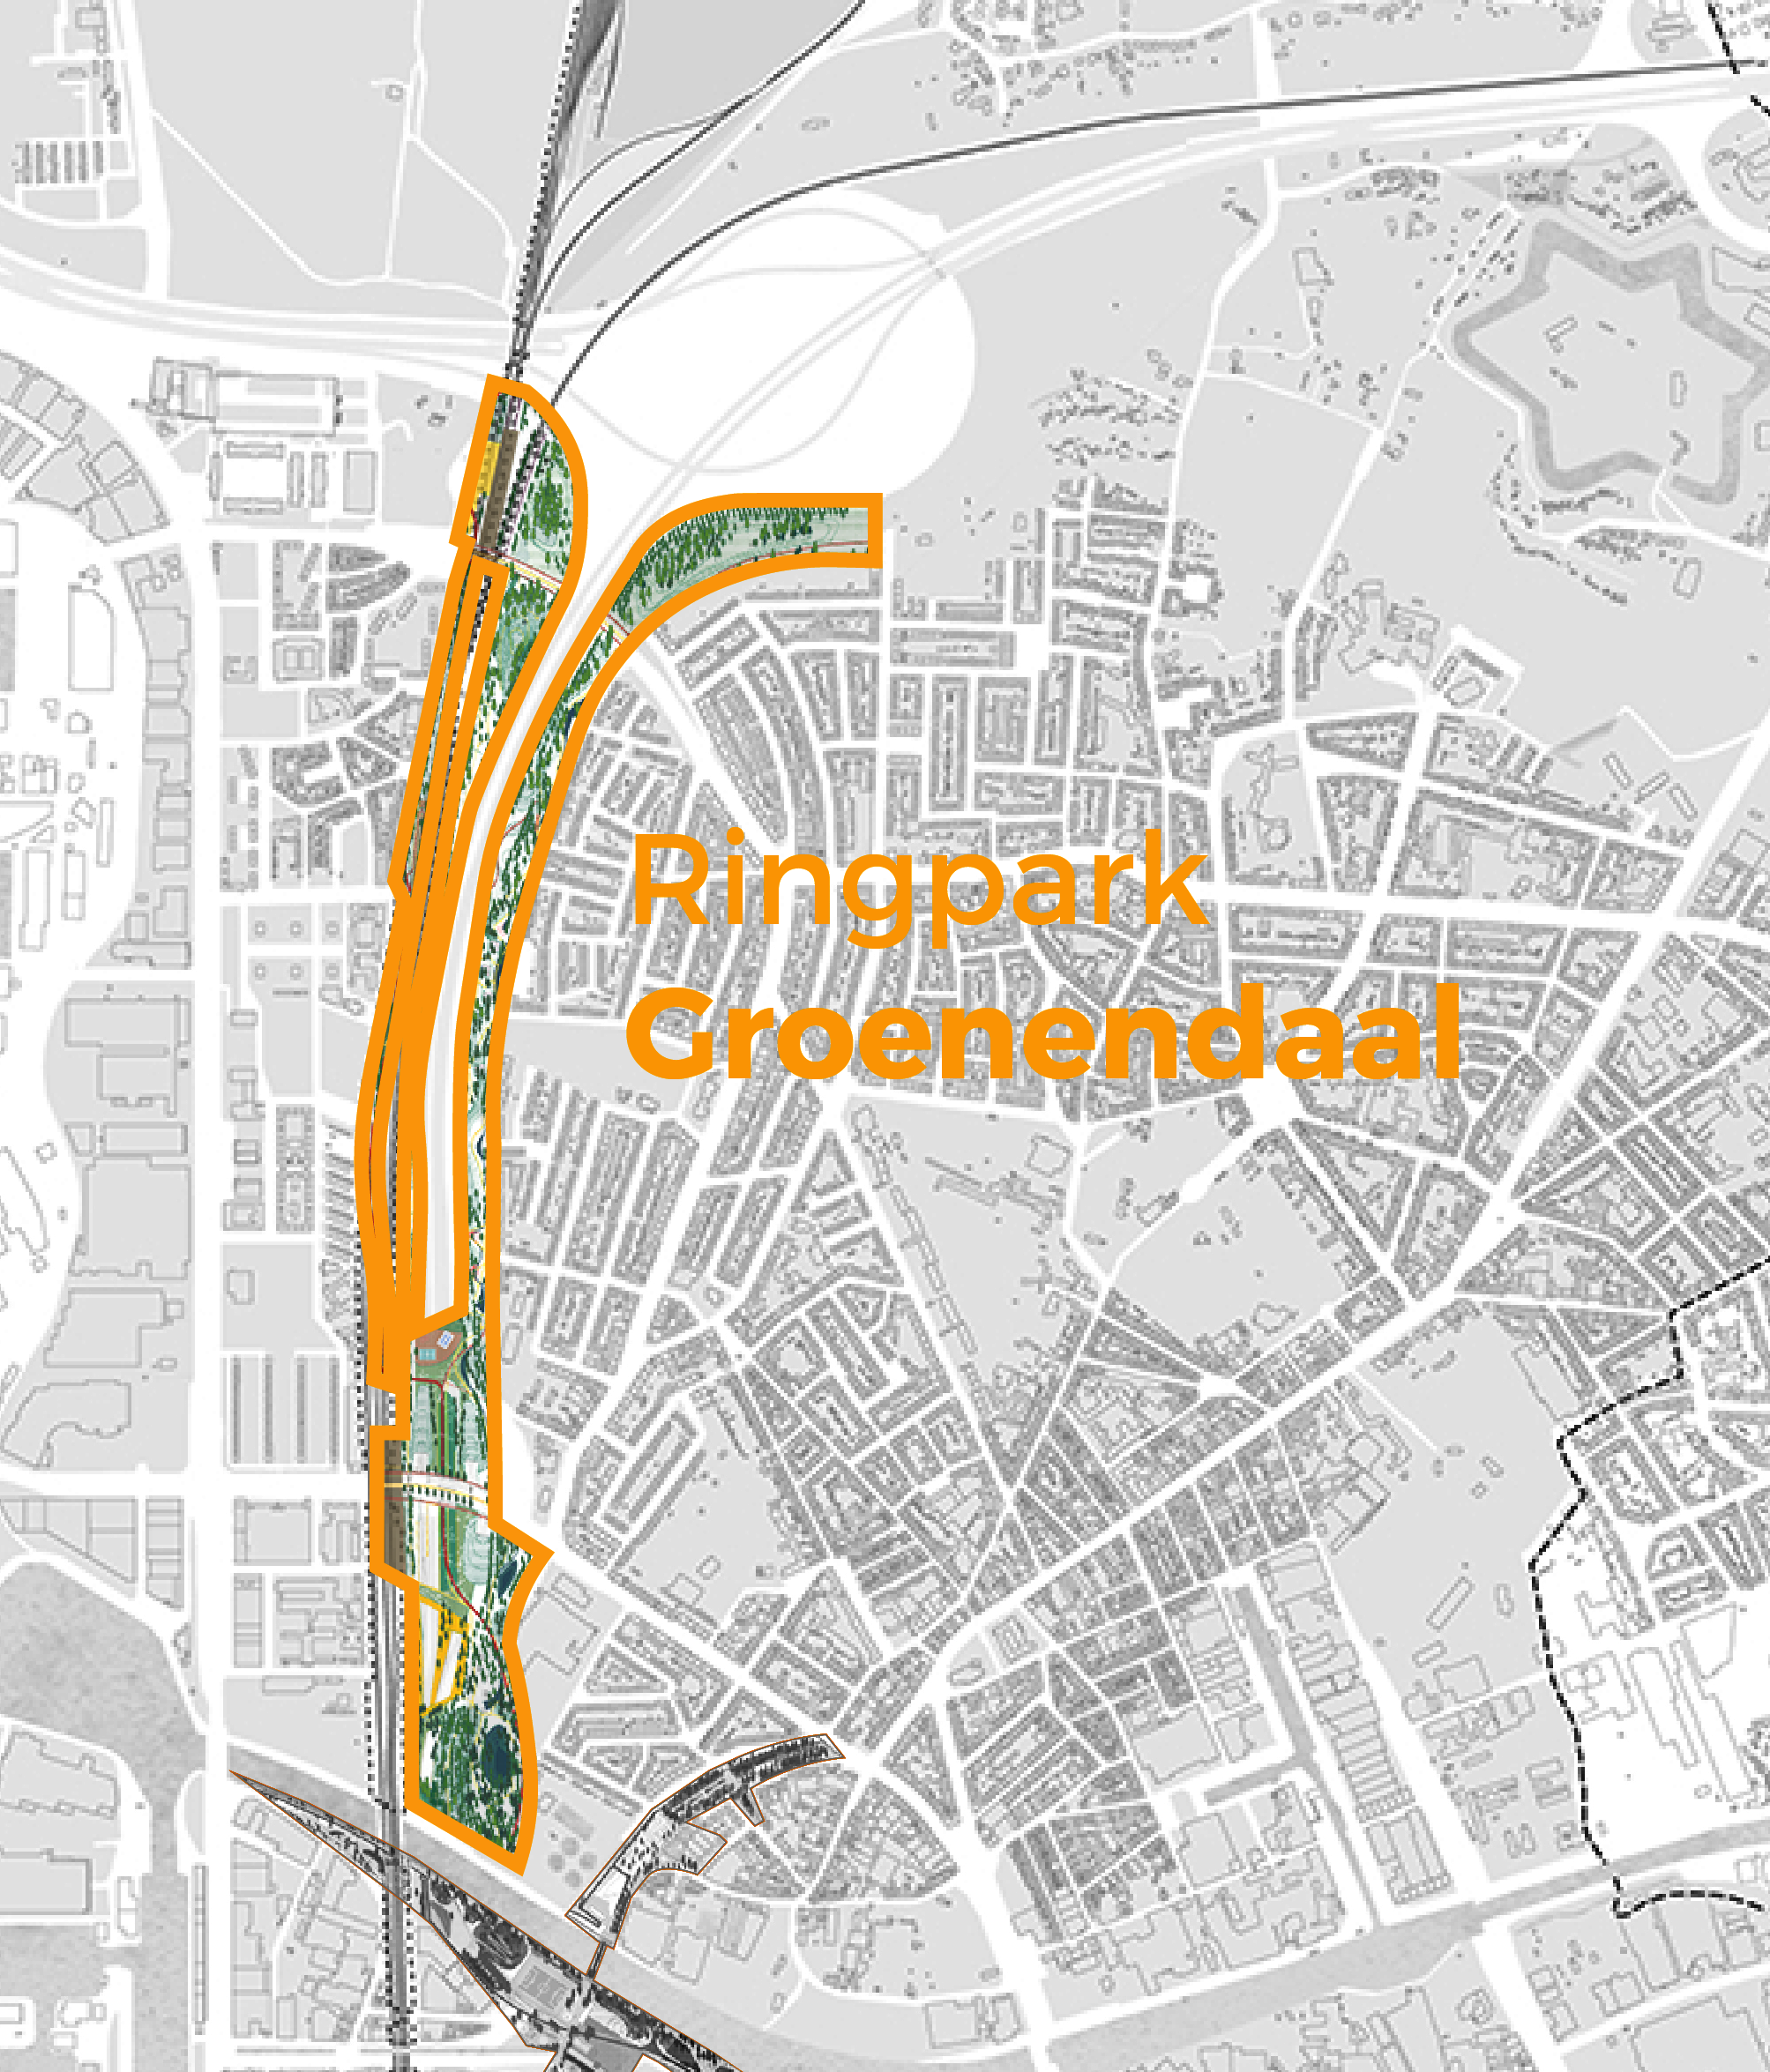 thumb_2 ID-KIT cluster GROENENDAAL_update 191113.png